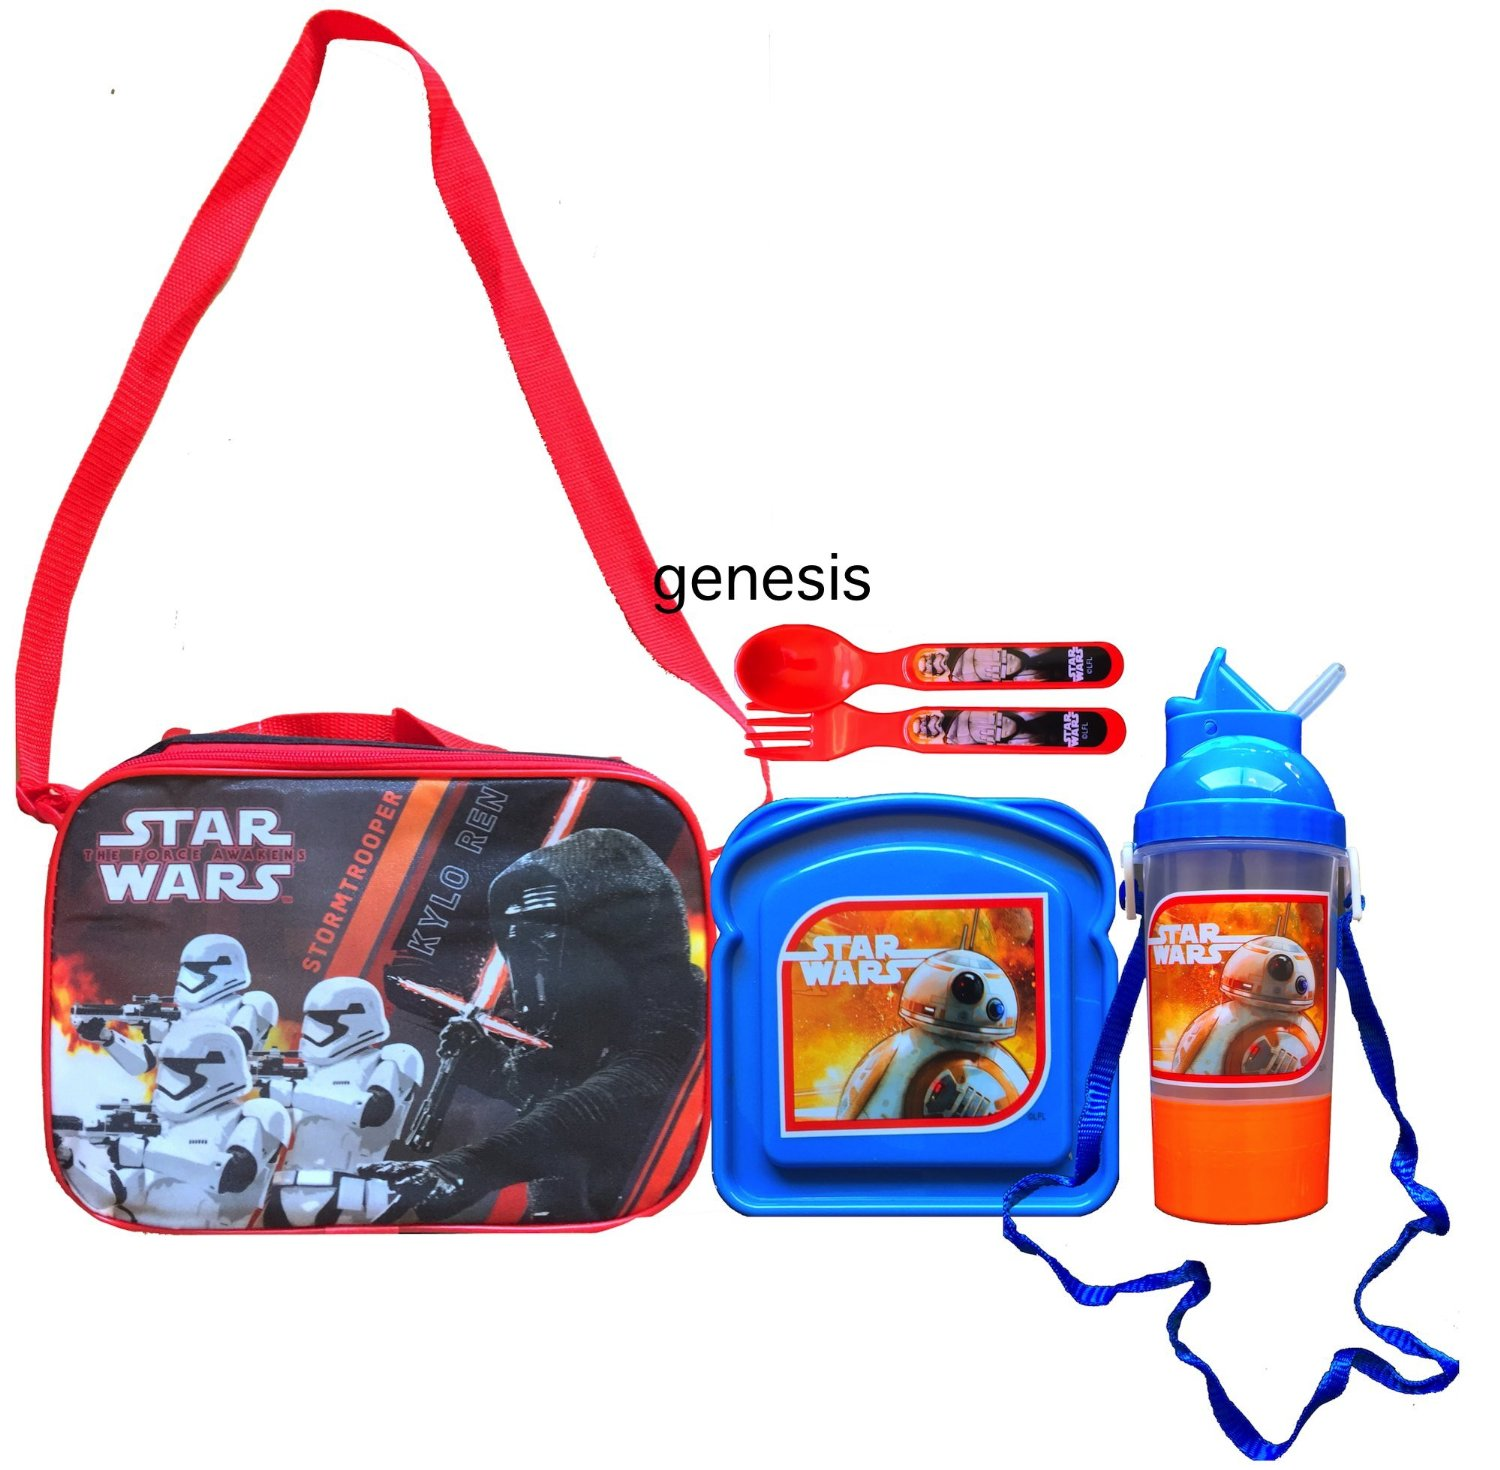 9e06e09a8b93 Buy Children's Insulated Kylo Ren Lunch Bag Star Wars The Force ...